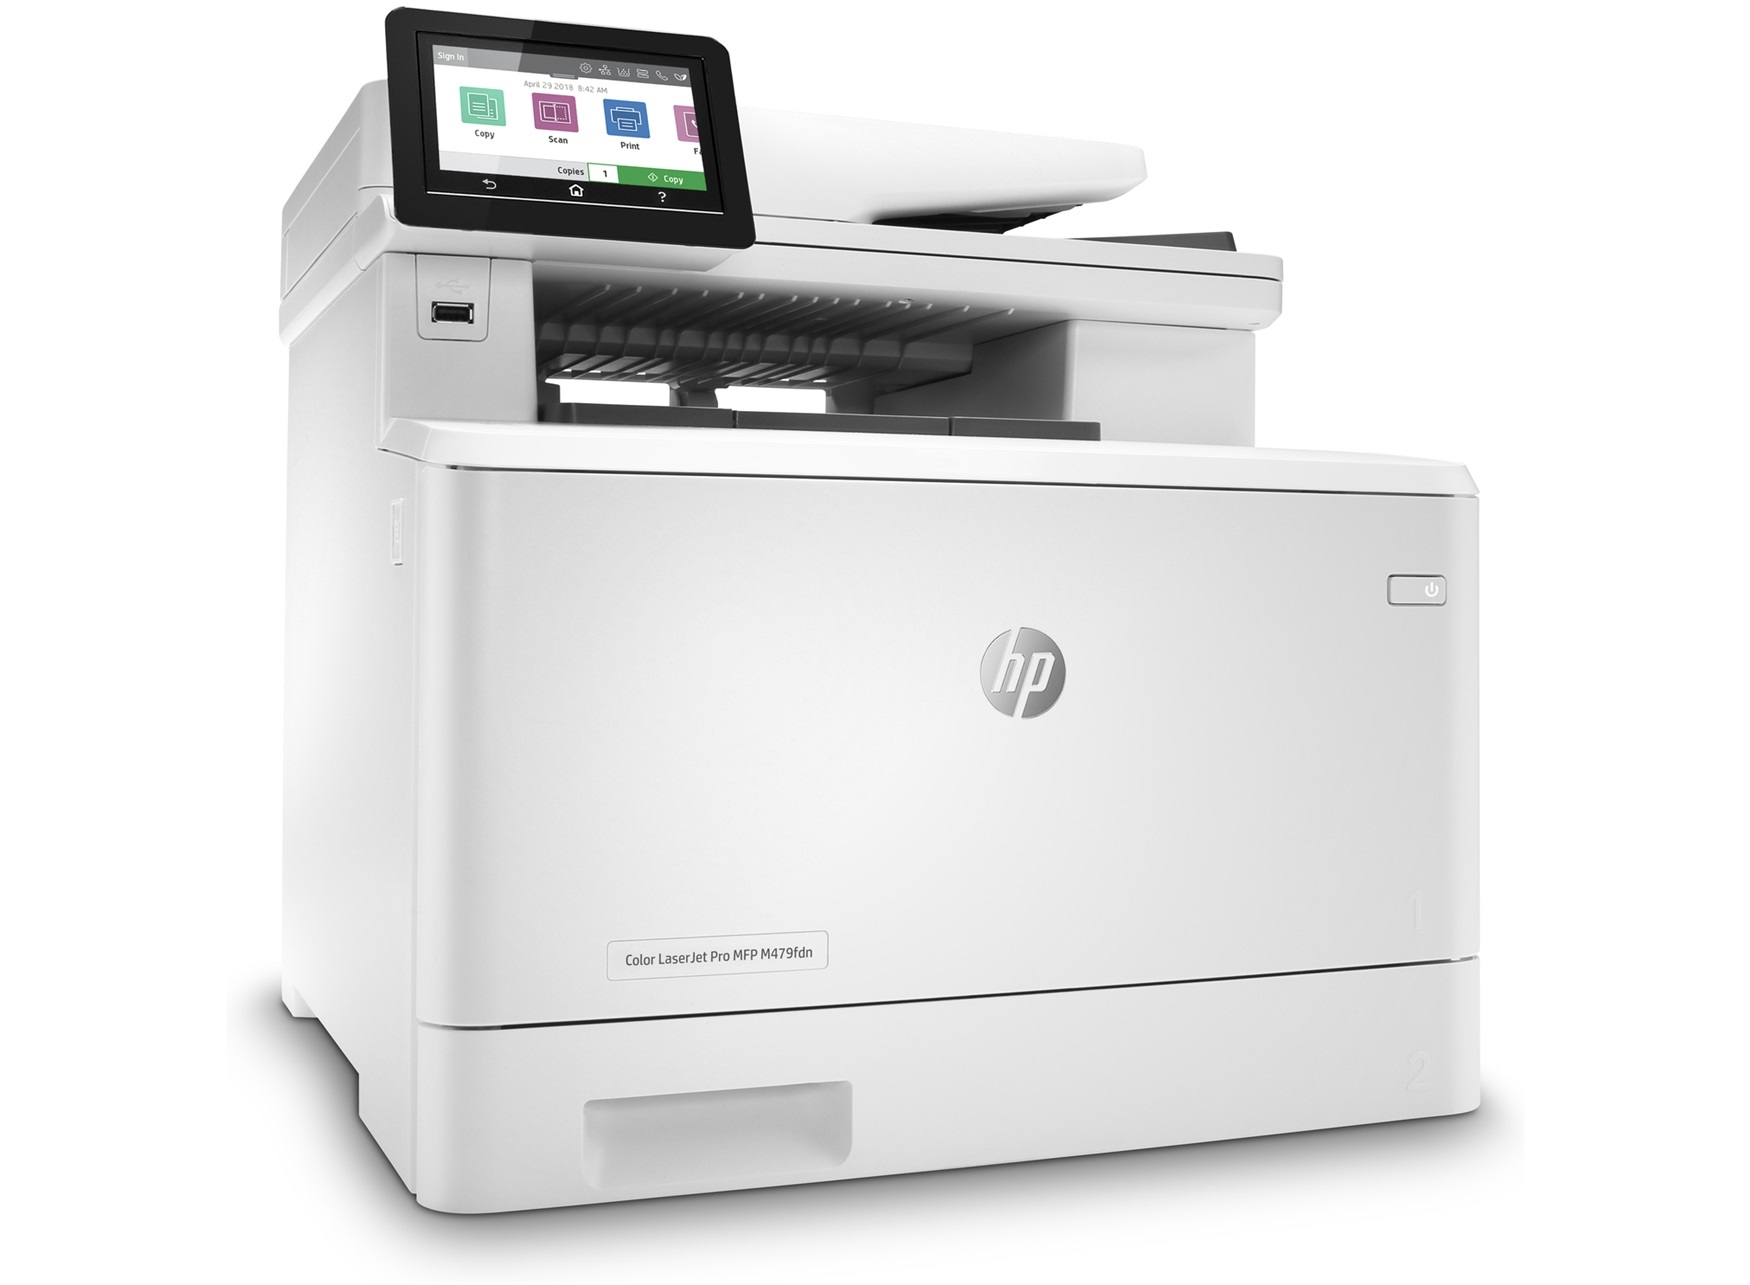 HP Color LaserJet MFP M479fdn Printer (W1A79A)